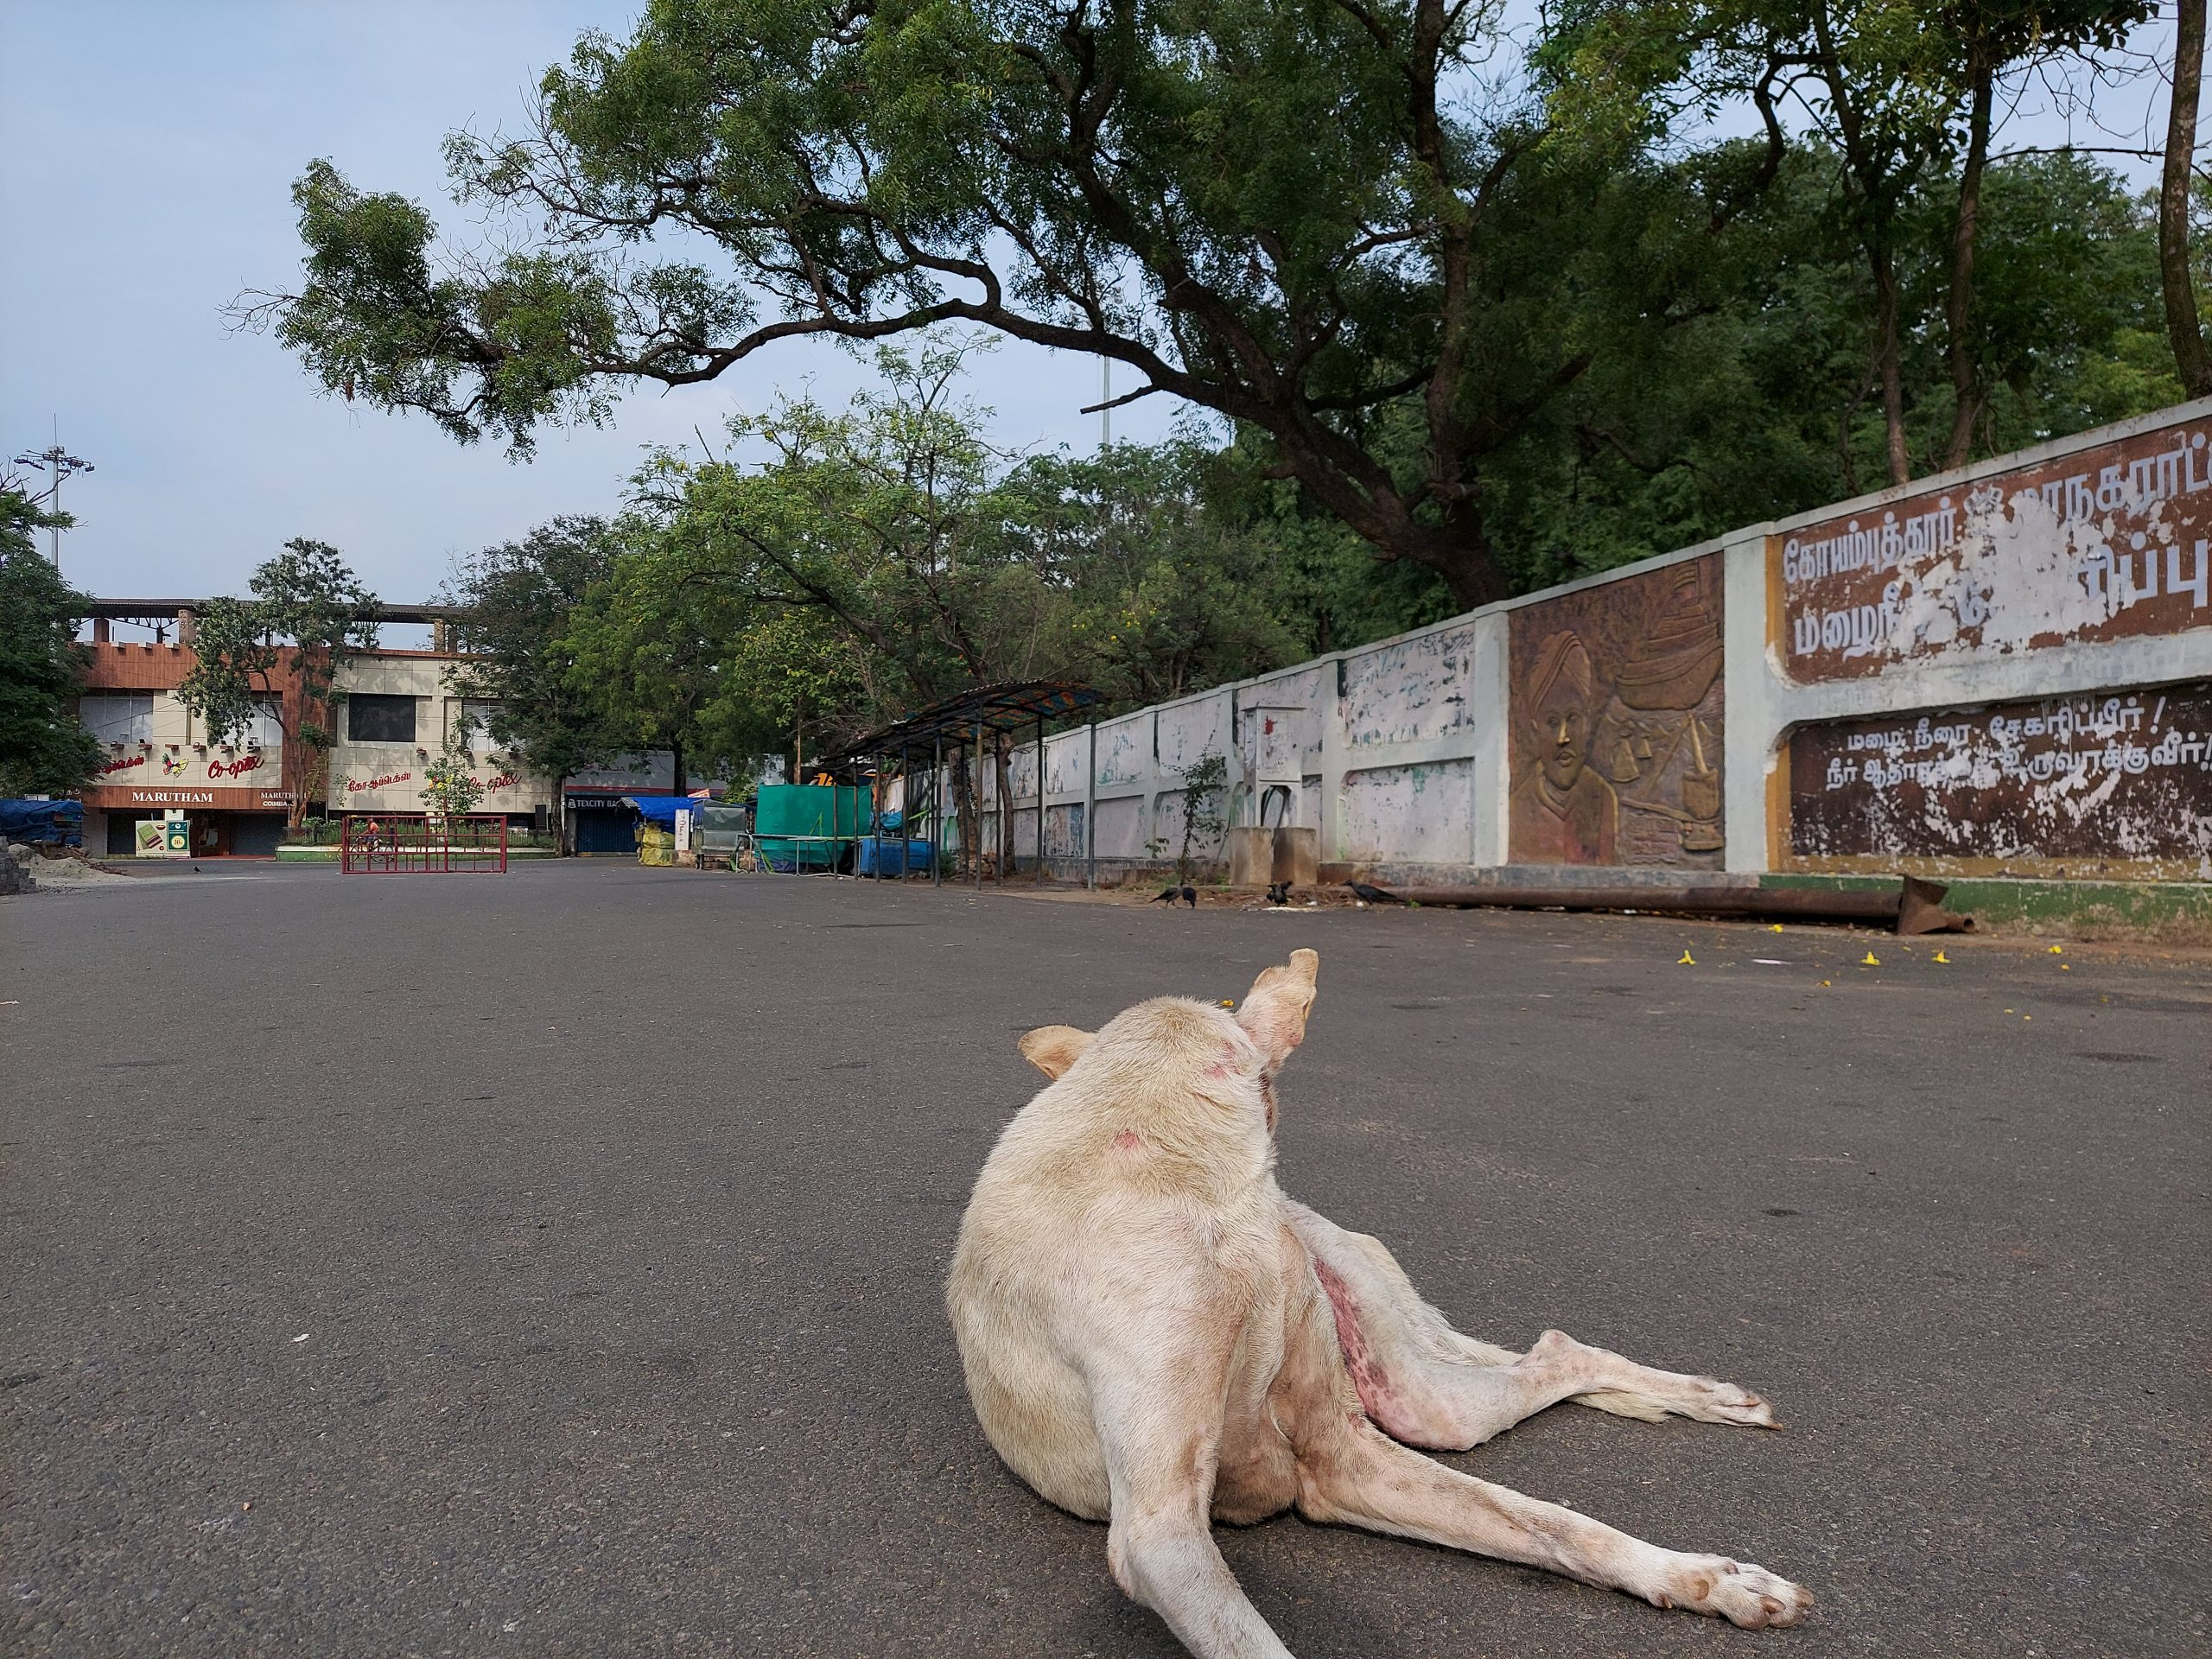 A stray dog lying on a road